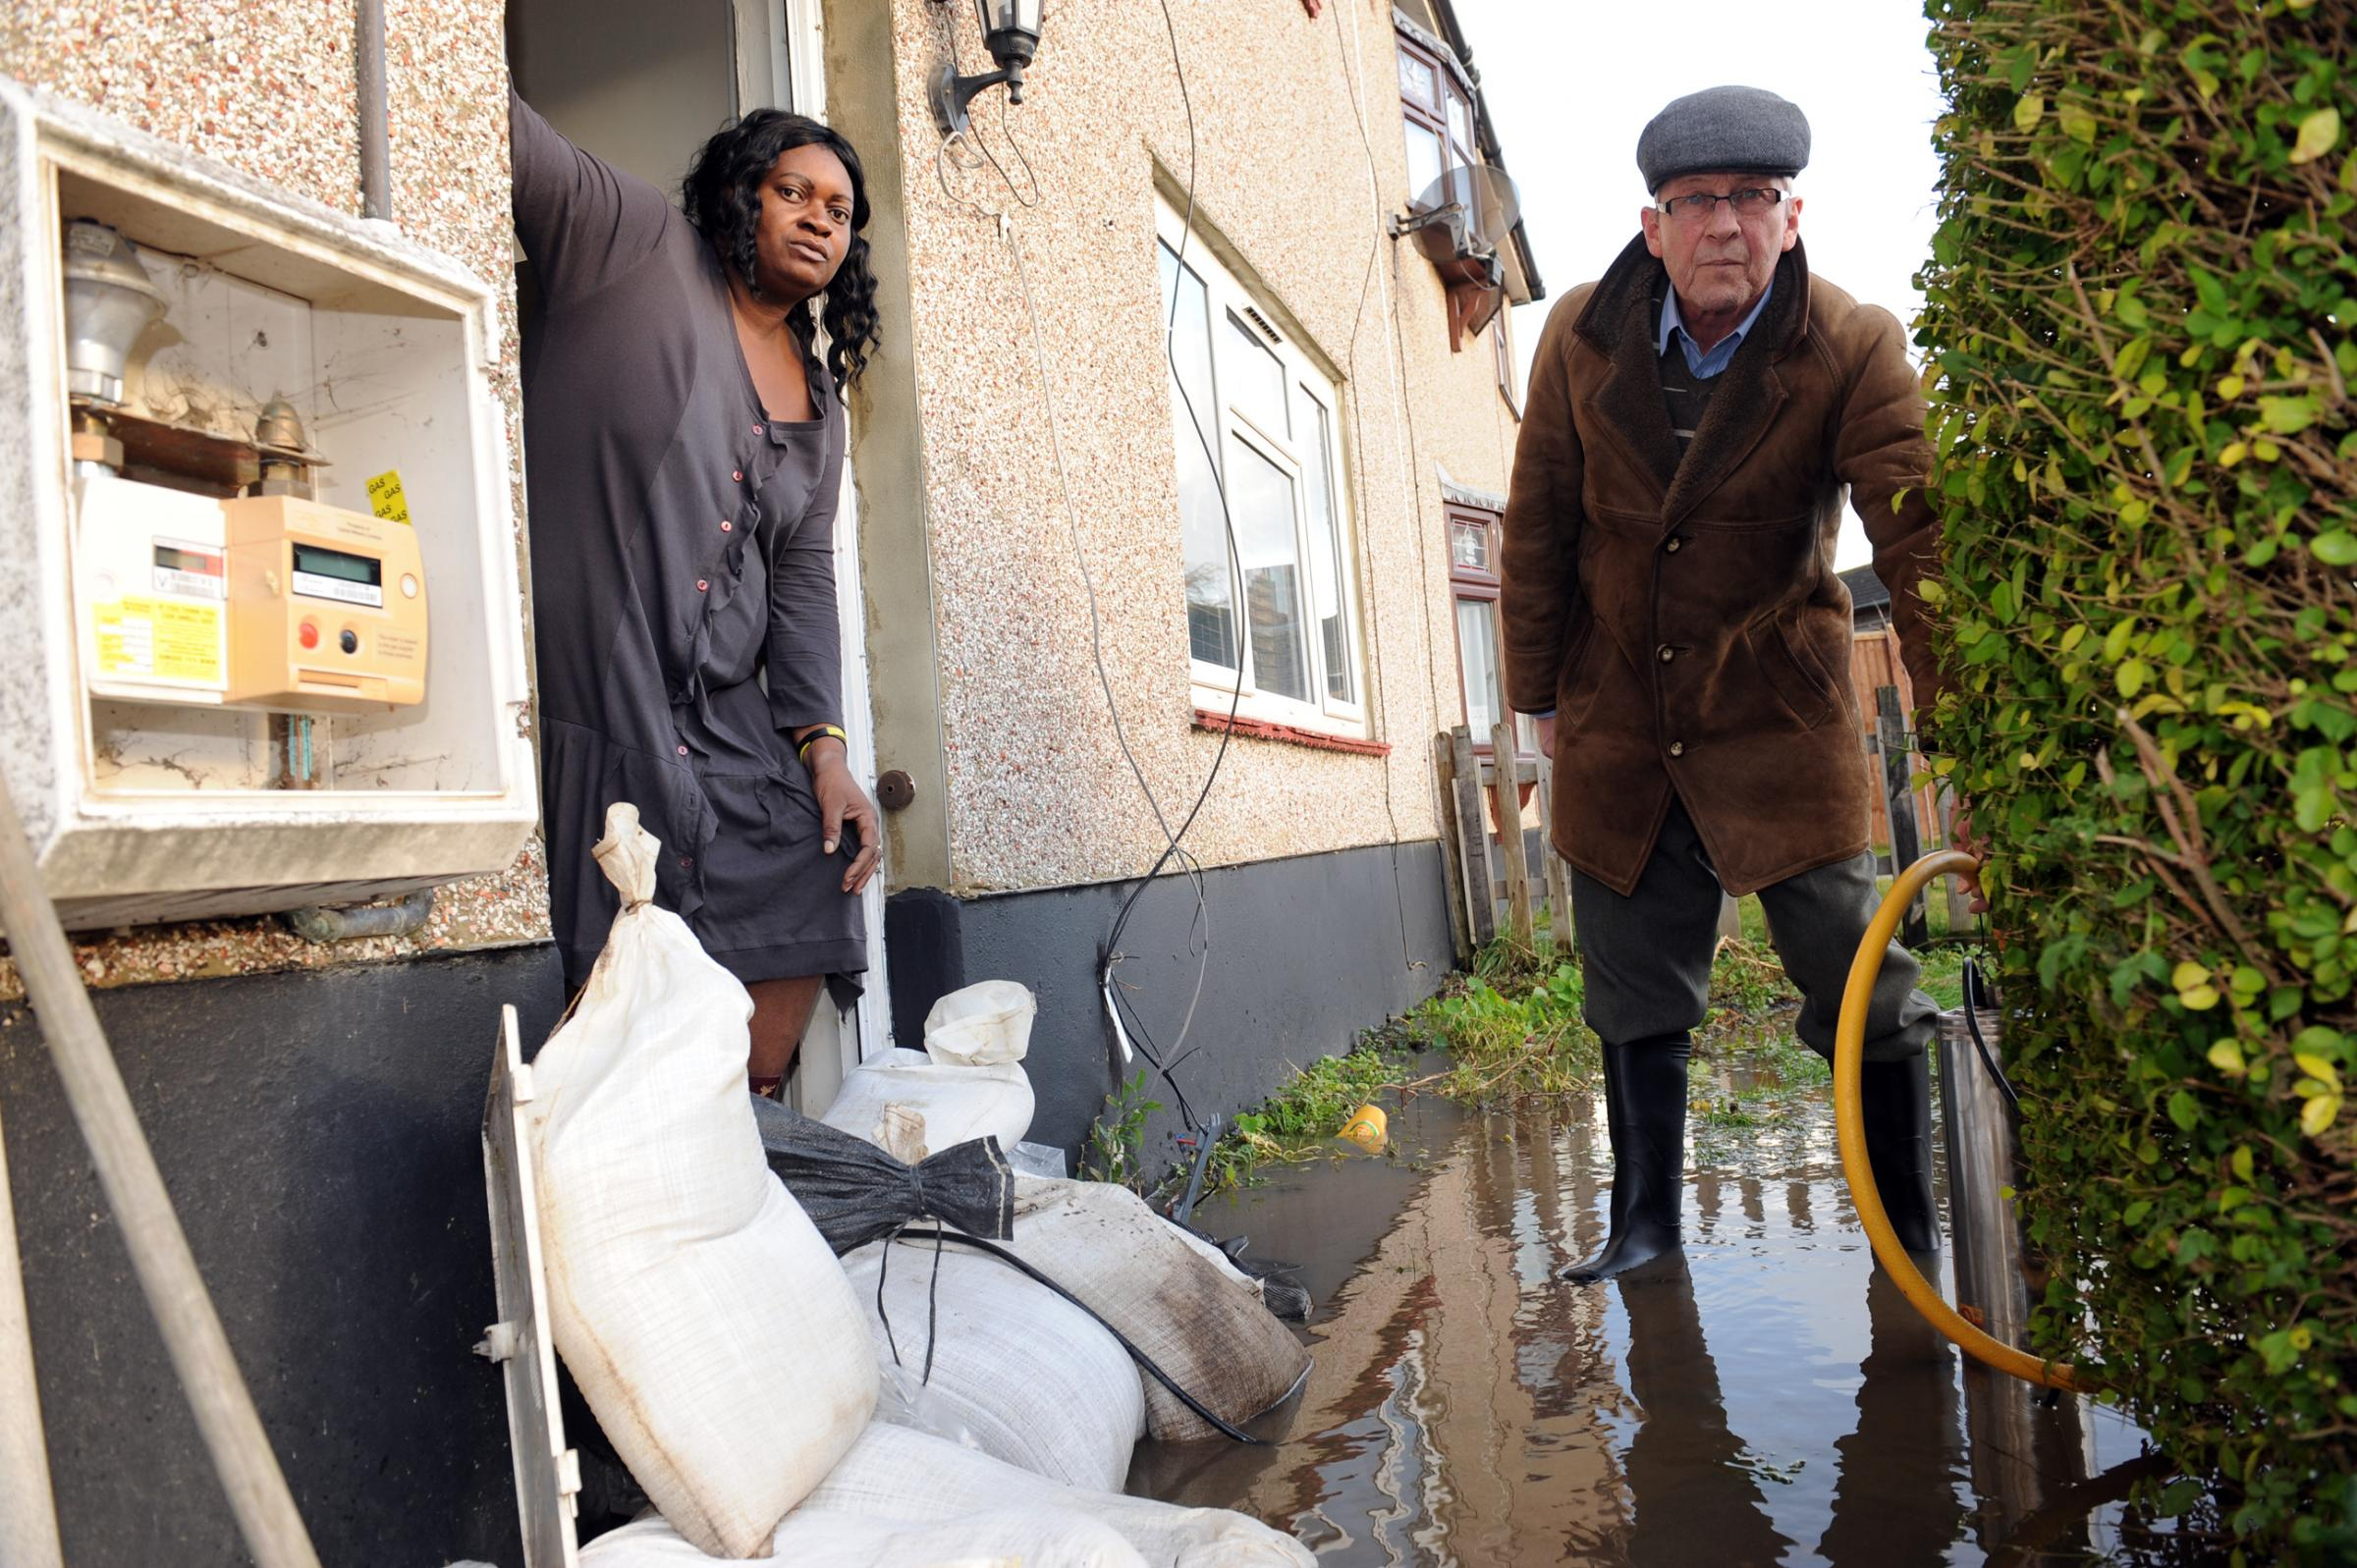 We've had enough of this – John and Juliet Battie have been walking around their home in their wellies